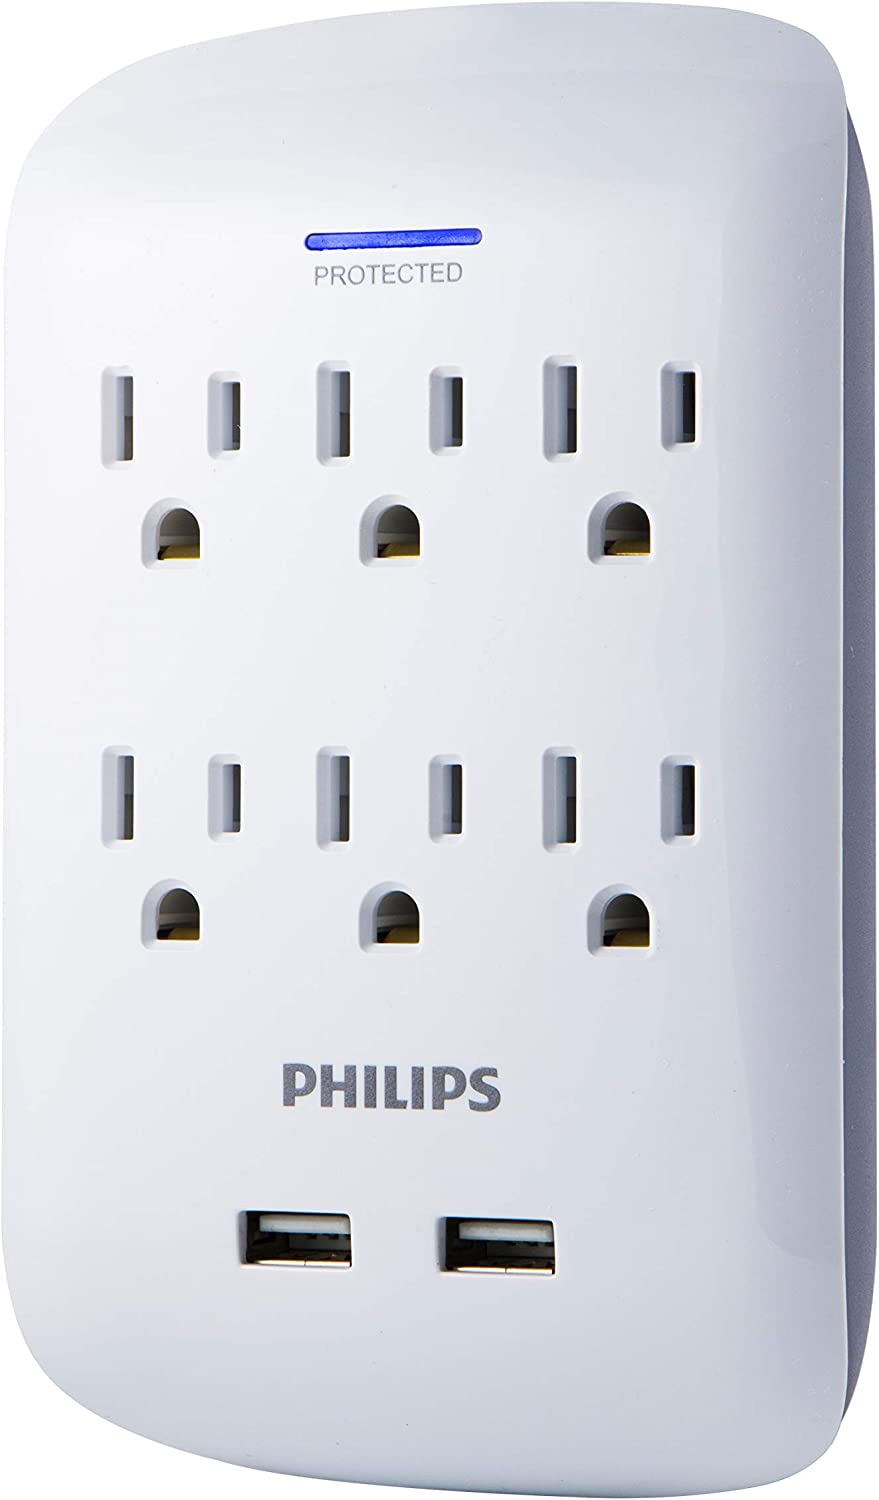 Philips 6-Outlet 2 USB Surge Protector Wall Tap Adapter, Charging Station, 3-Prong, SPP6263WB/37